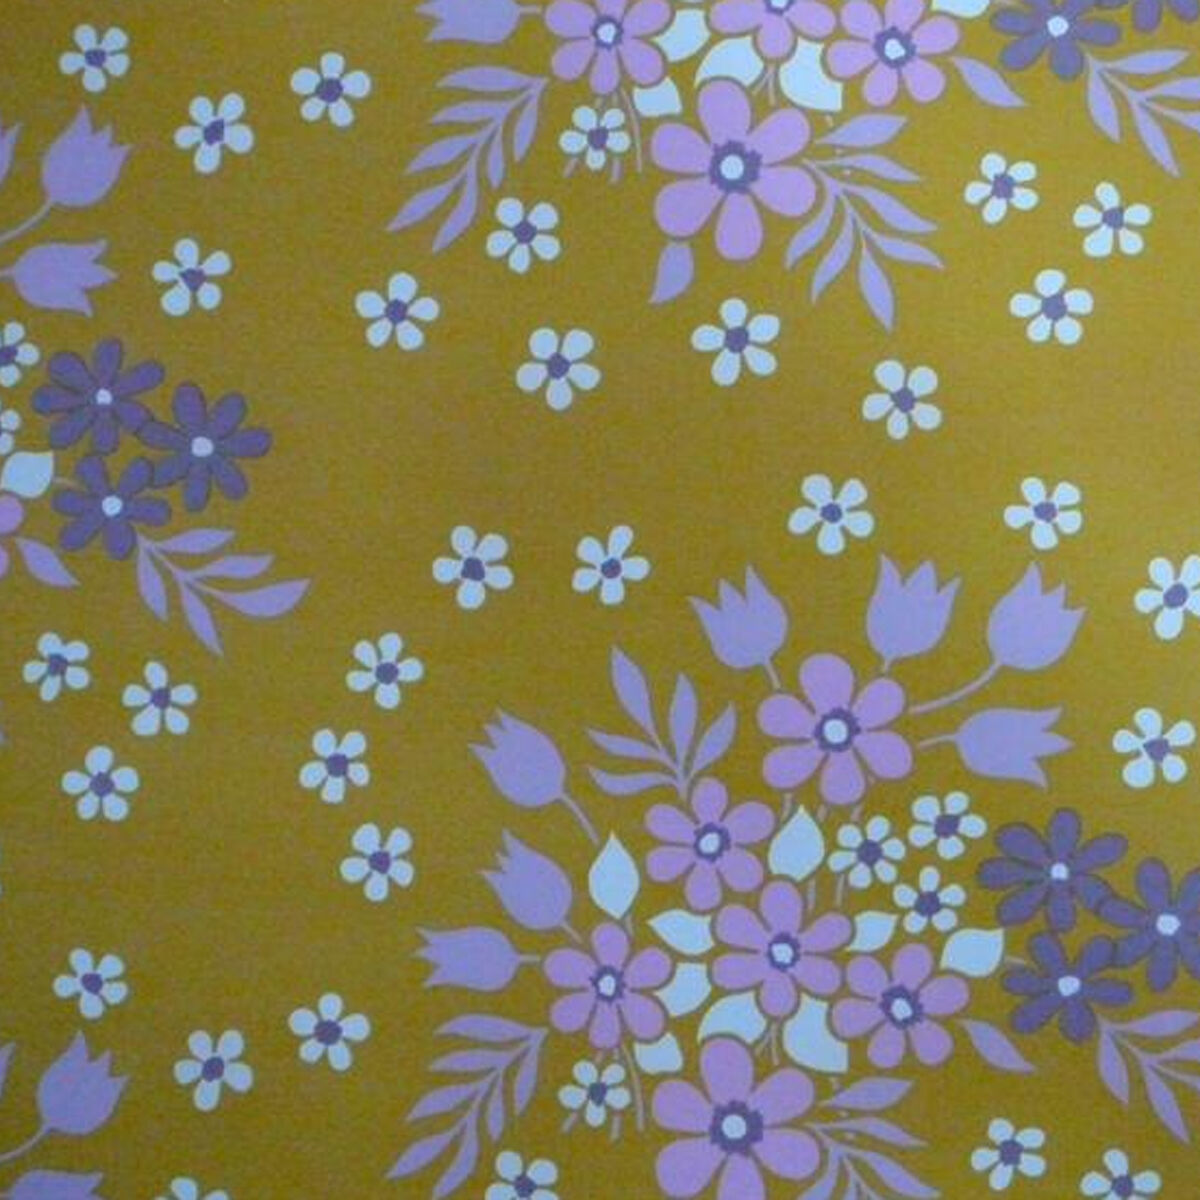 1970s Original Vintage Floral Wallpaper in FAB 70S FarbeS